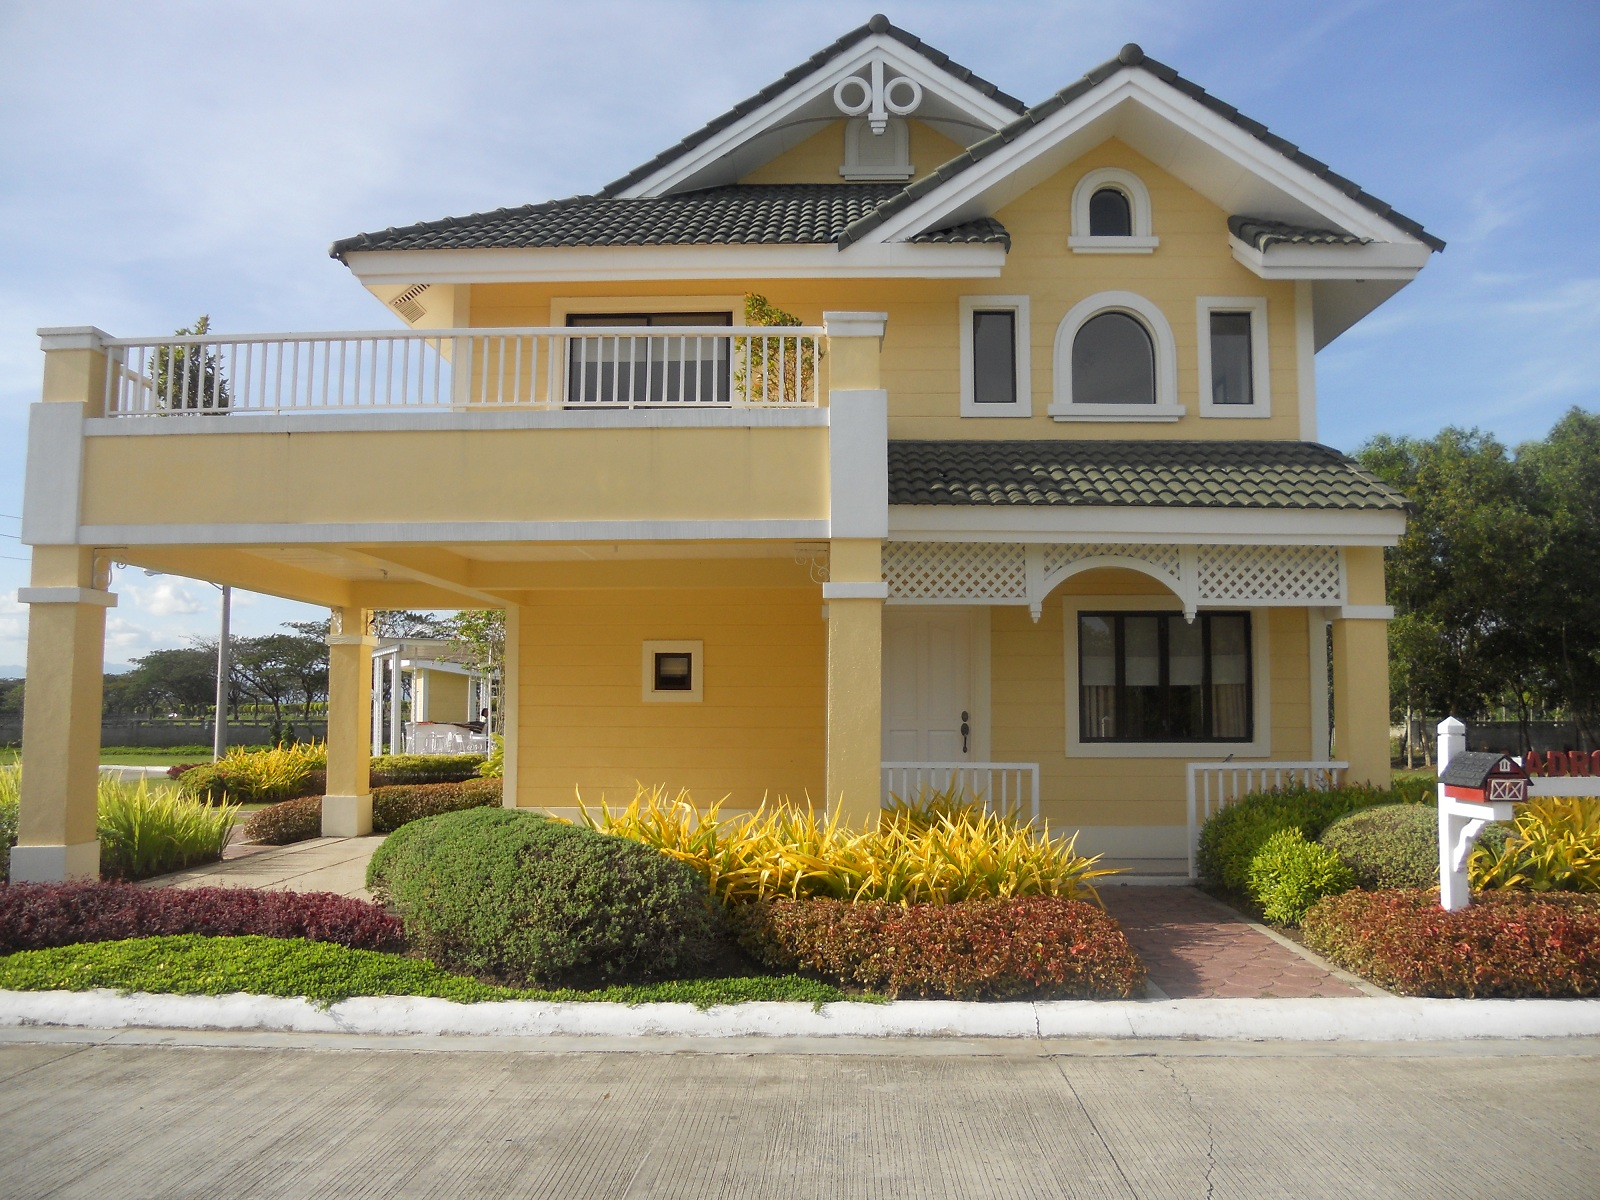 Savannah crest iloilo within savannah iloilo by camella for Houses models